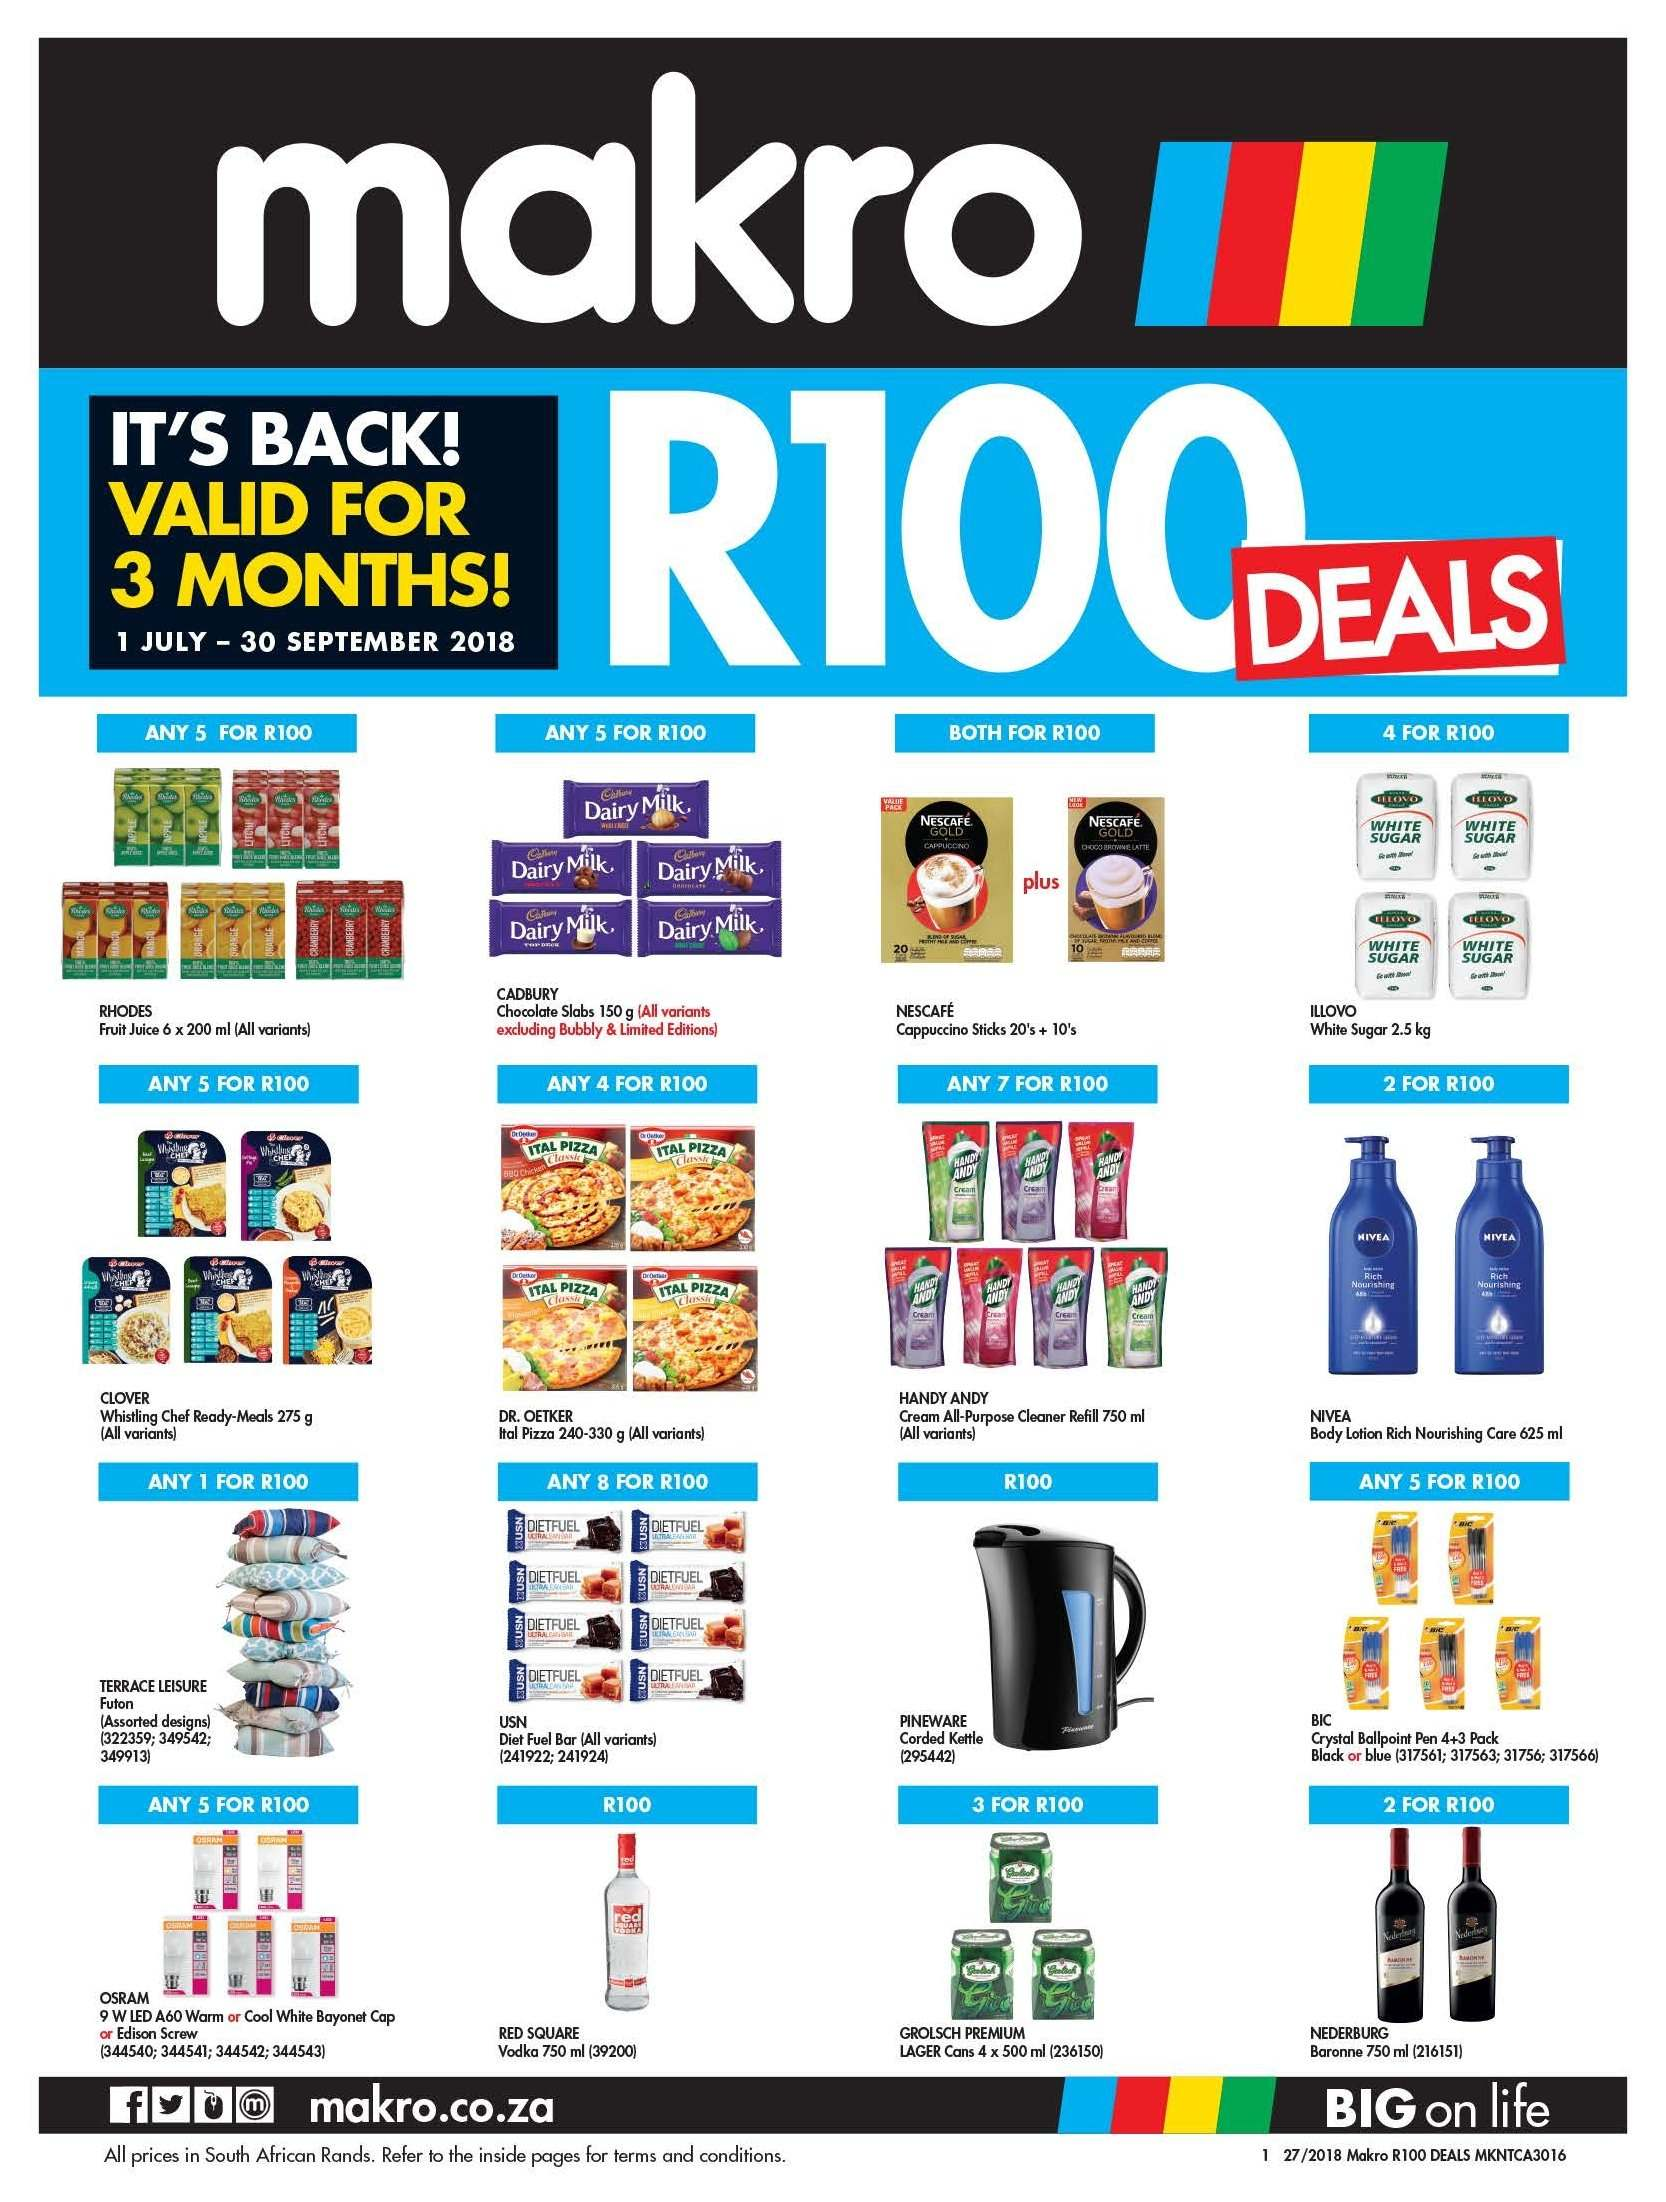 makro 100 deals rand days